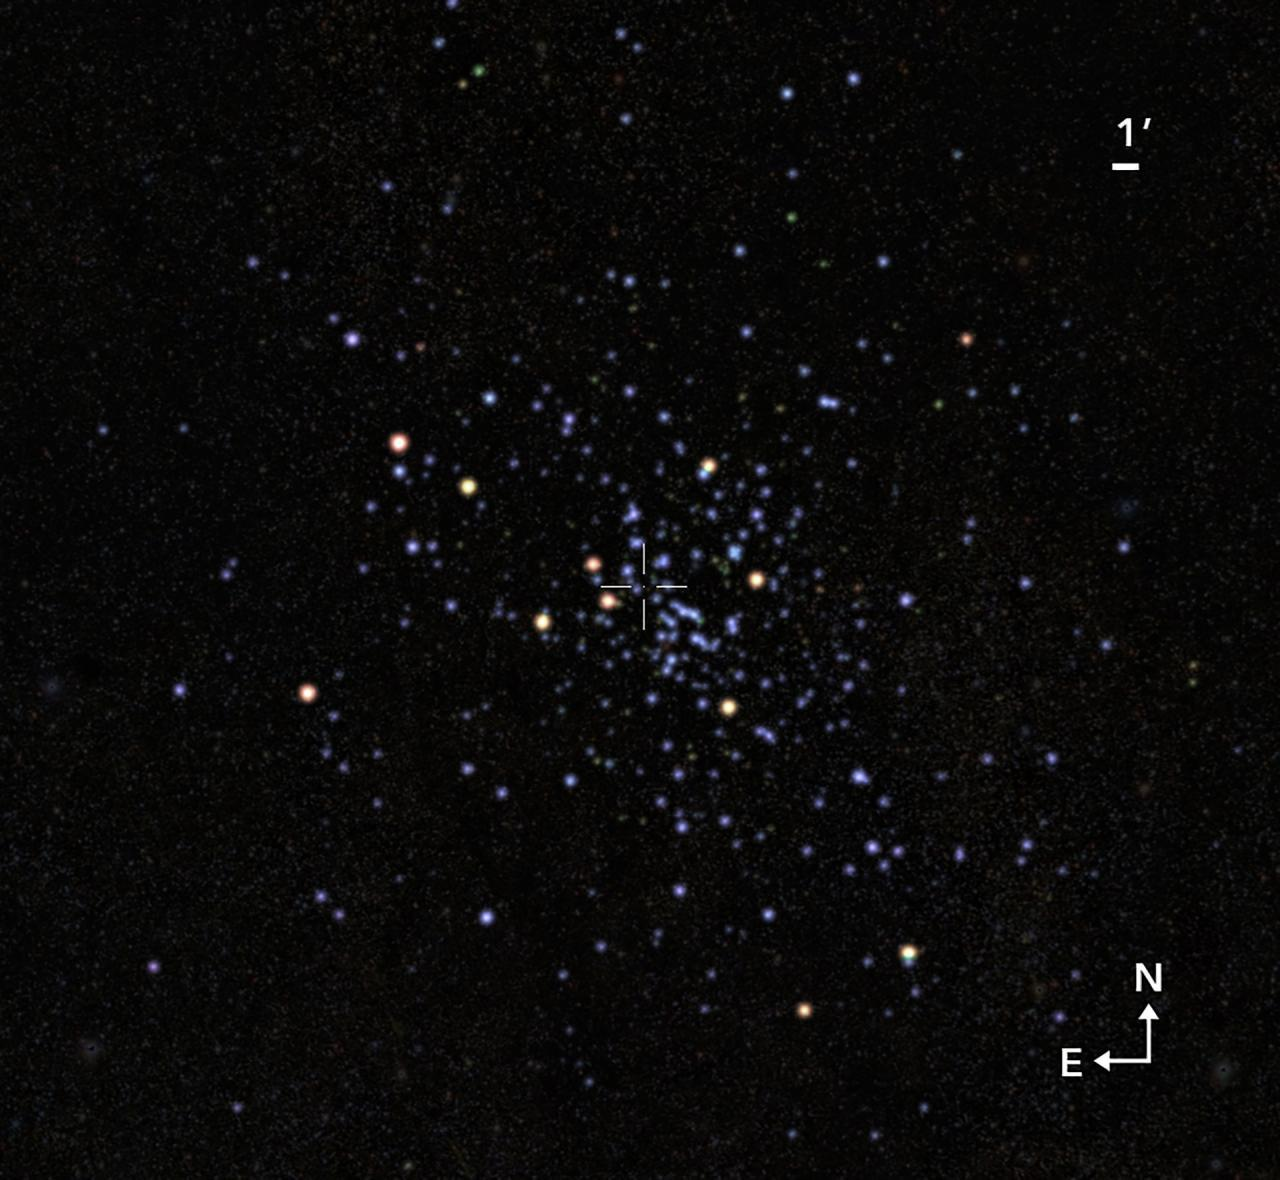 An international team of astrophysicists has announced the discovery of a previously unknown diffuse star cluster in the Milky Way. It was discovered during the analysis of data from the catalog observatory Gaia, as well as the results of ground-based observations.